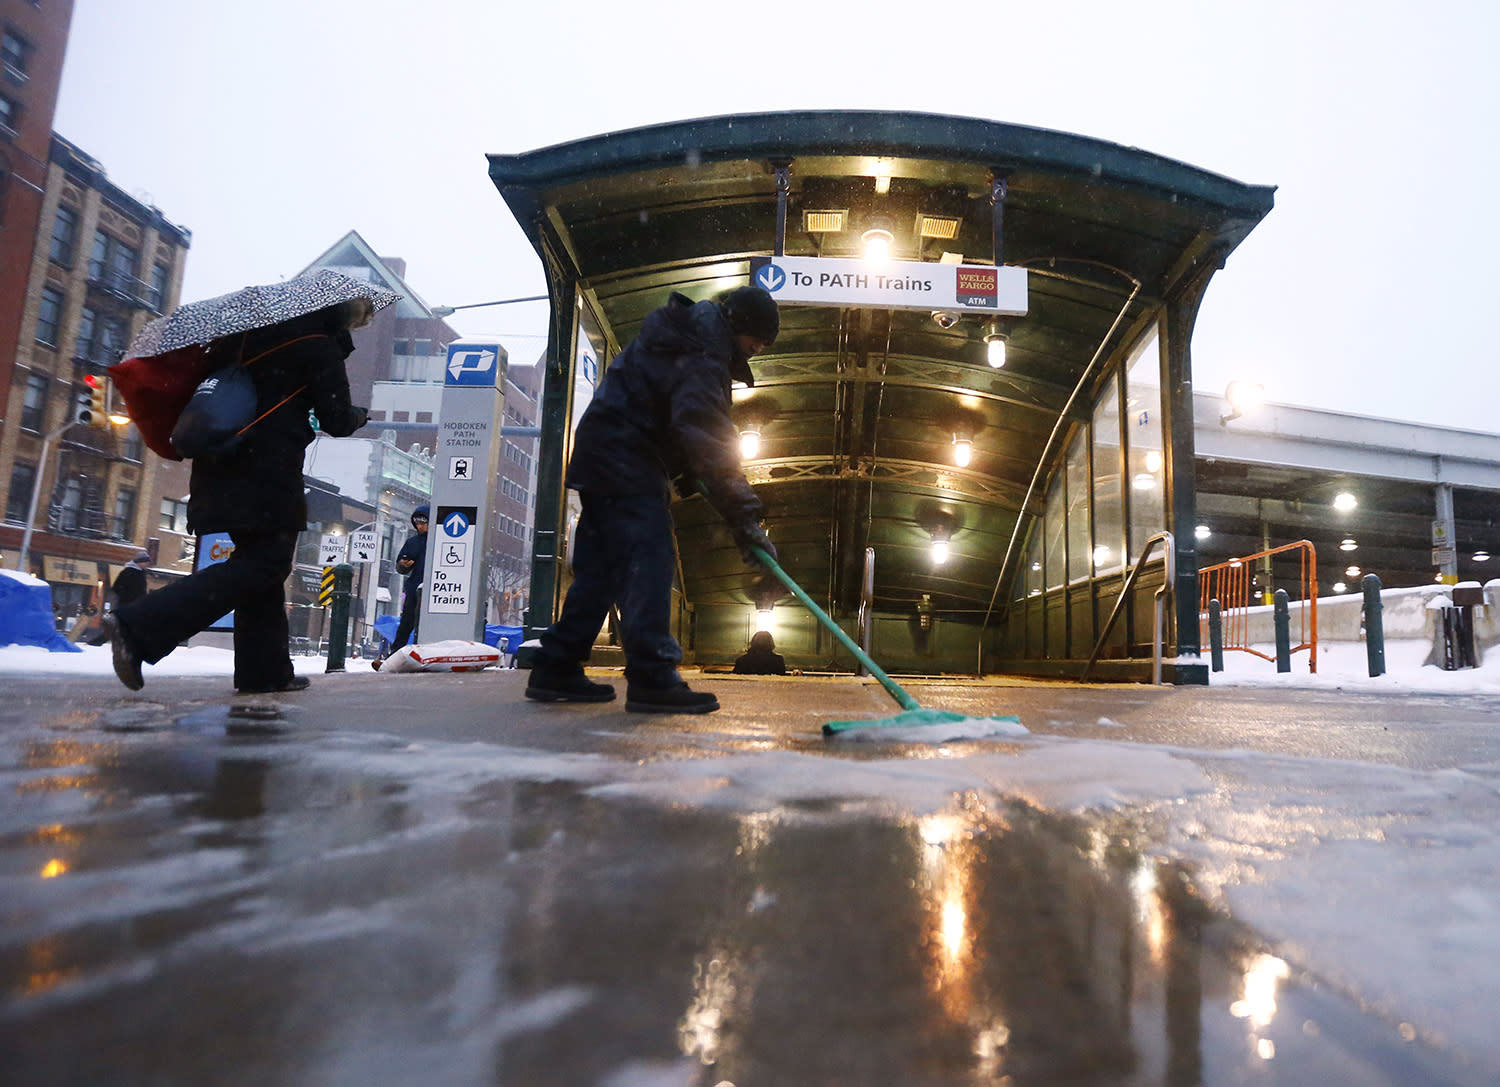 <p>A worker uses a squeegee to push snow and rain mixture away from the entrance of the Hoboken PATH train station during a snowstorm, Tuesday, March 14, 2017, in Hoboken, N.J. (Julio Cortez/AP) </p>